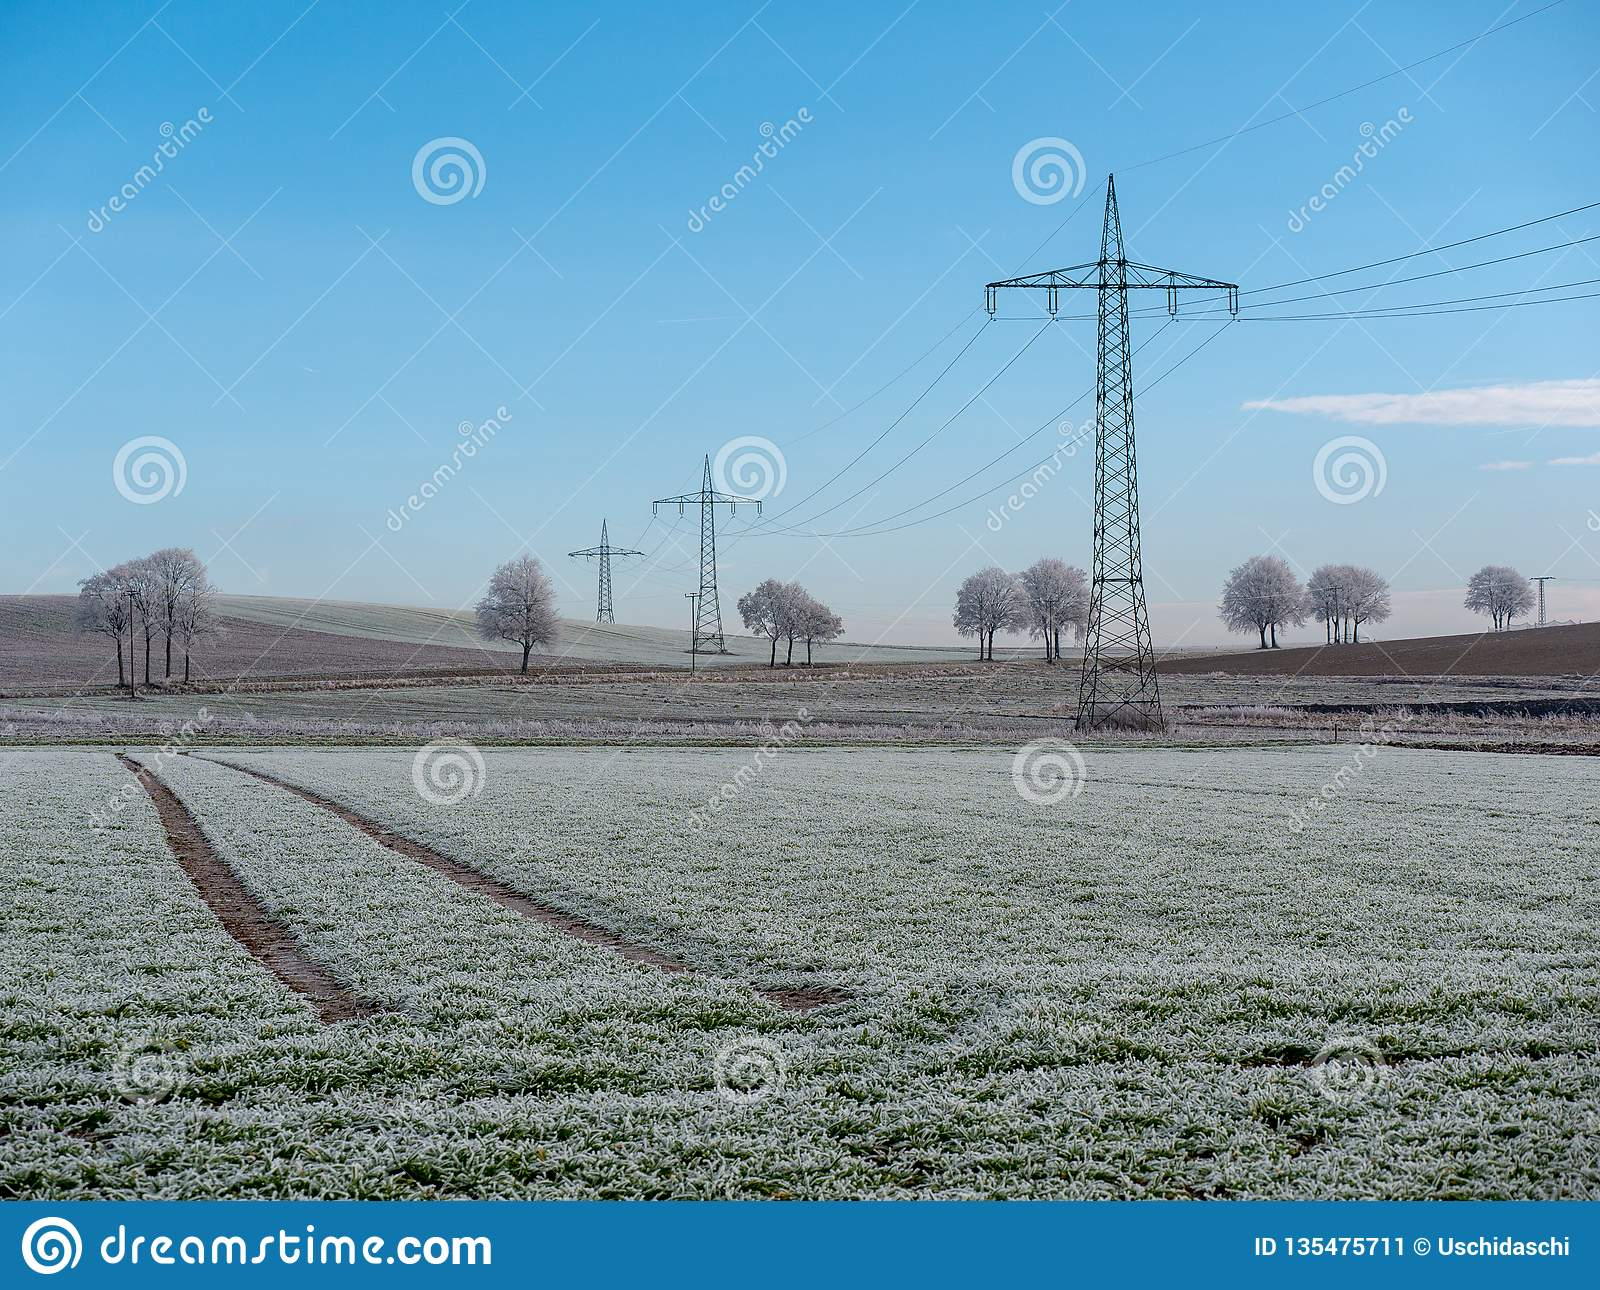 Image of winter landscape with power lines